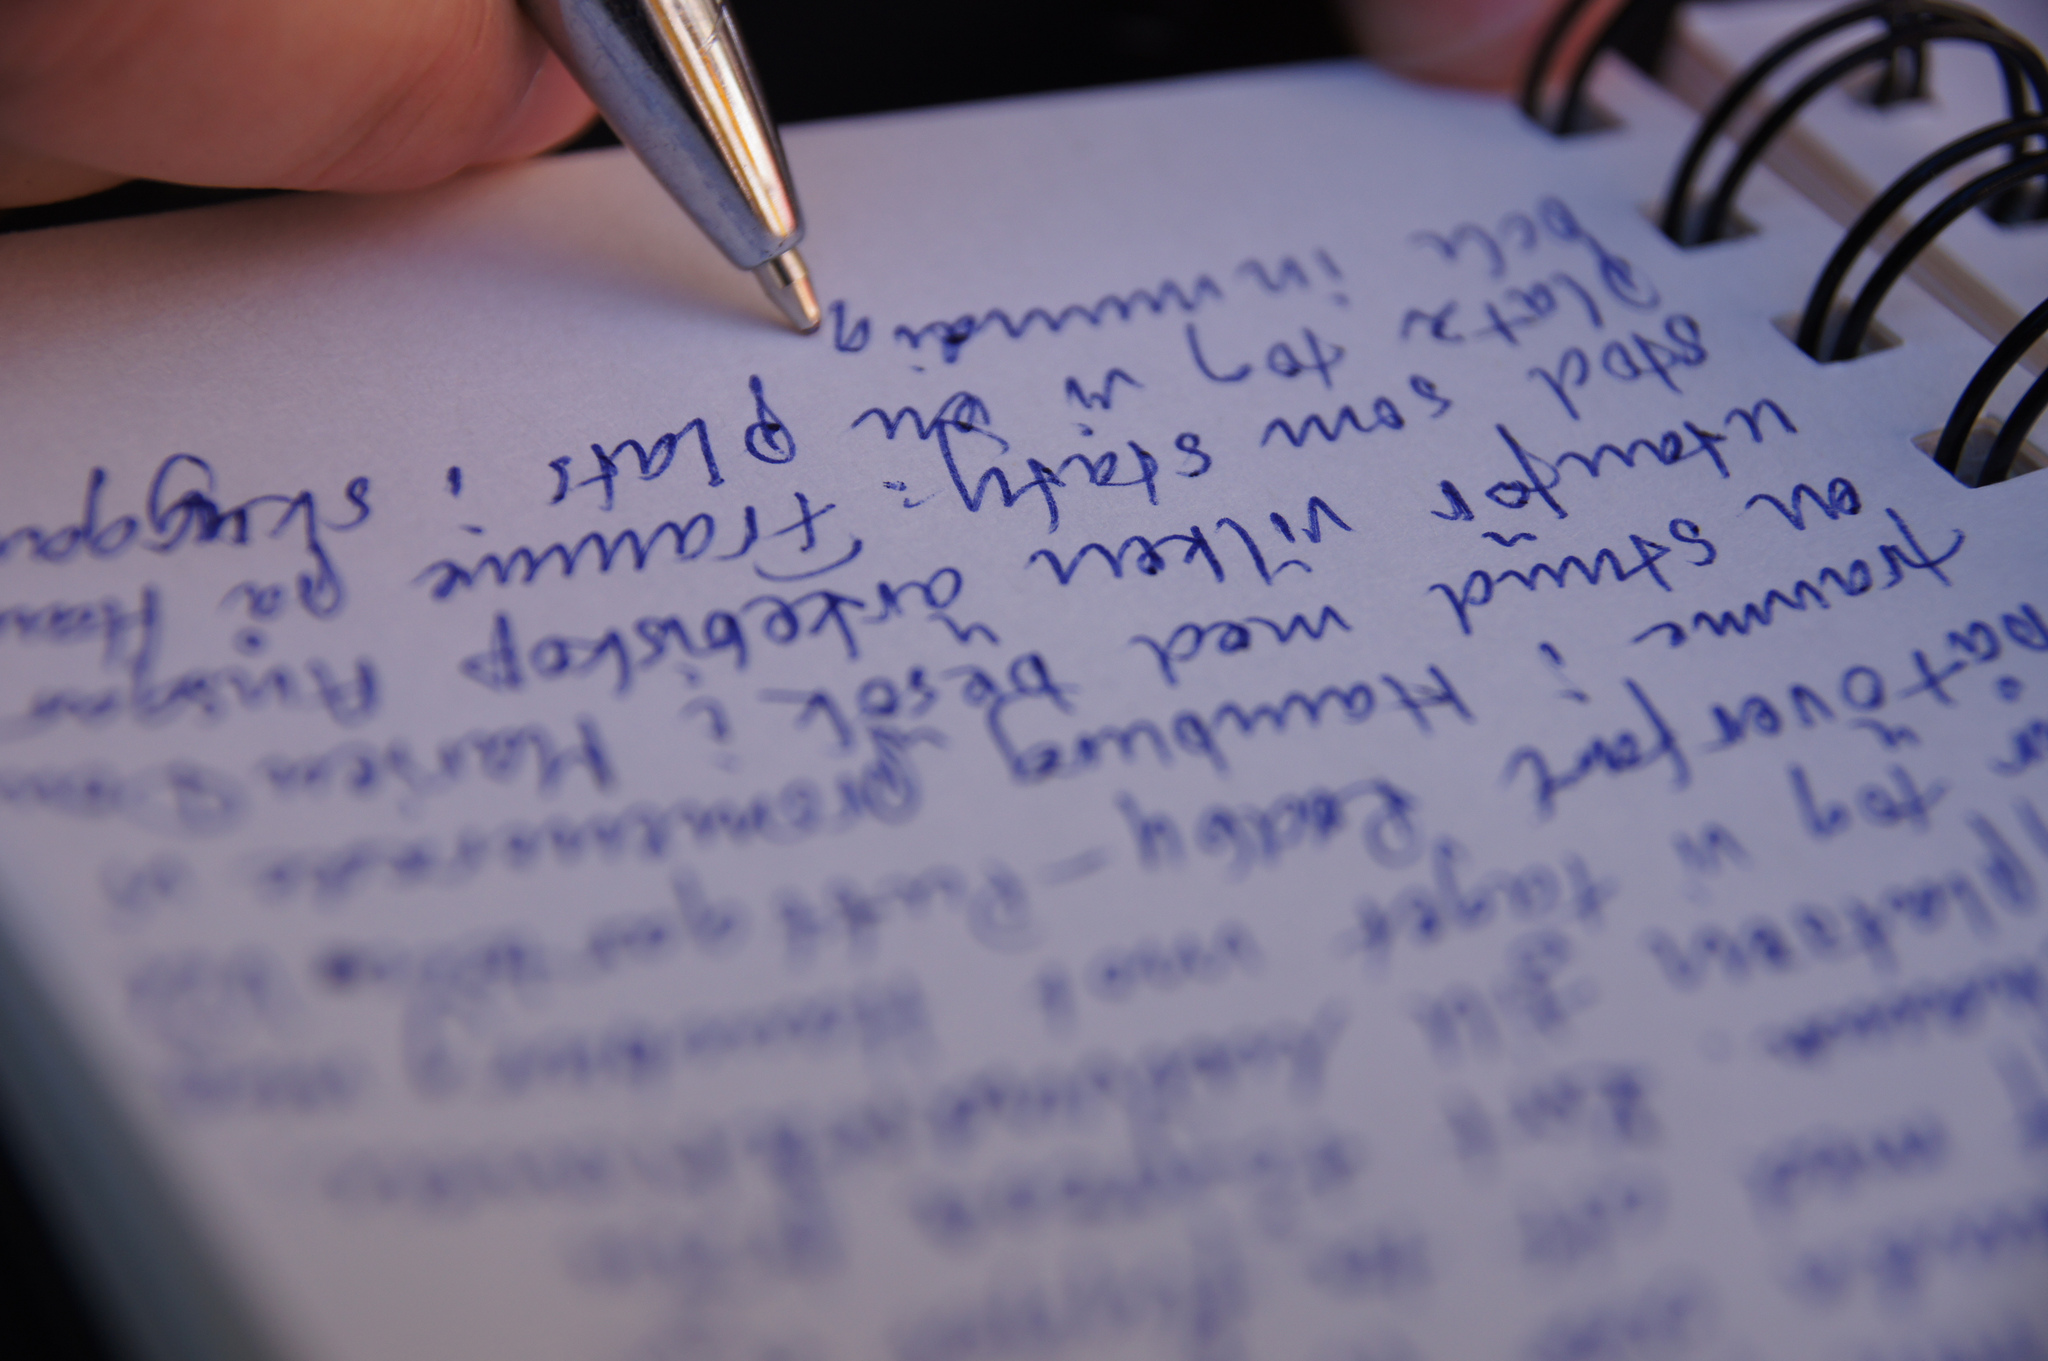 Guest Post by Kim Volker: Keeping a Journal with your Senior